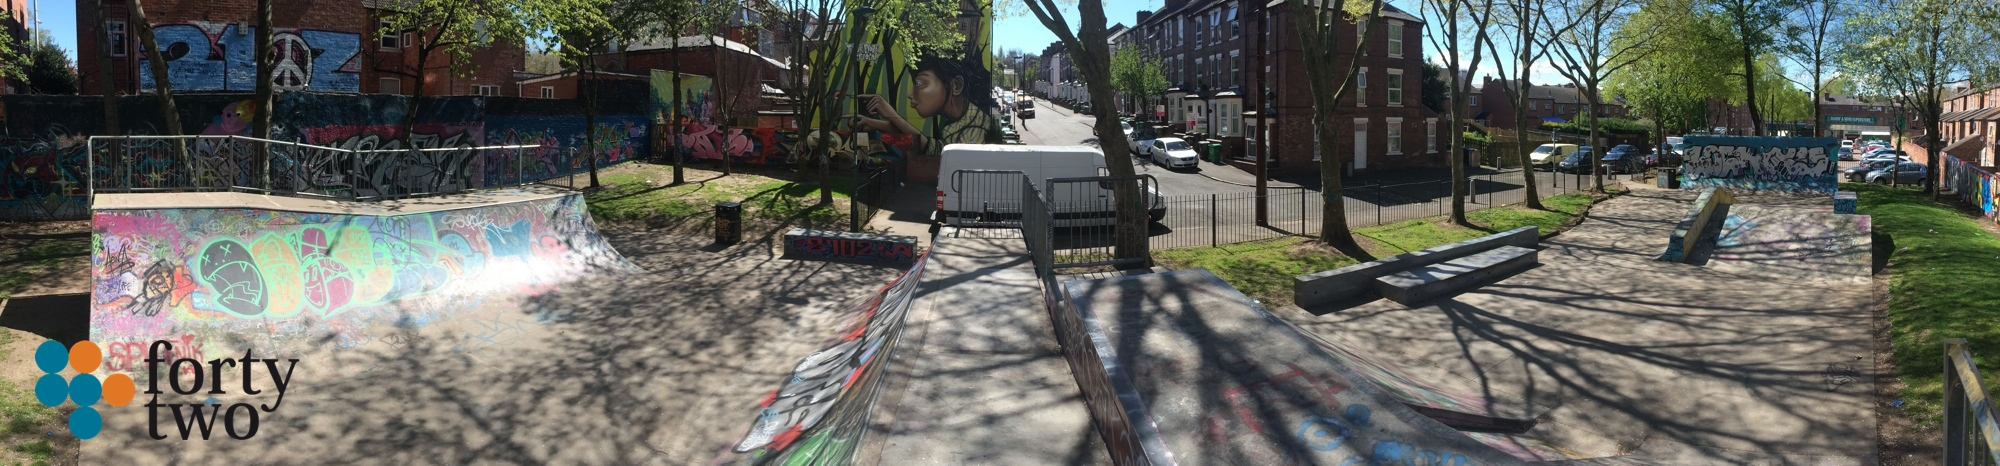 The beautiful Maple Street skatepark in Hyson Green Nottingham.